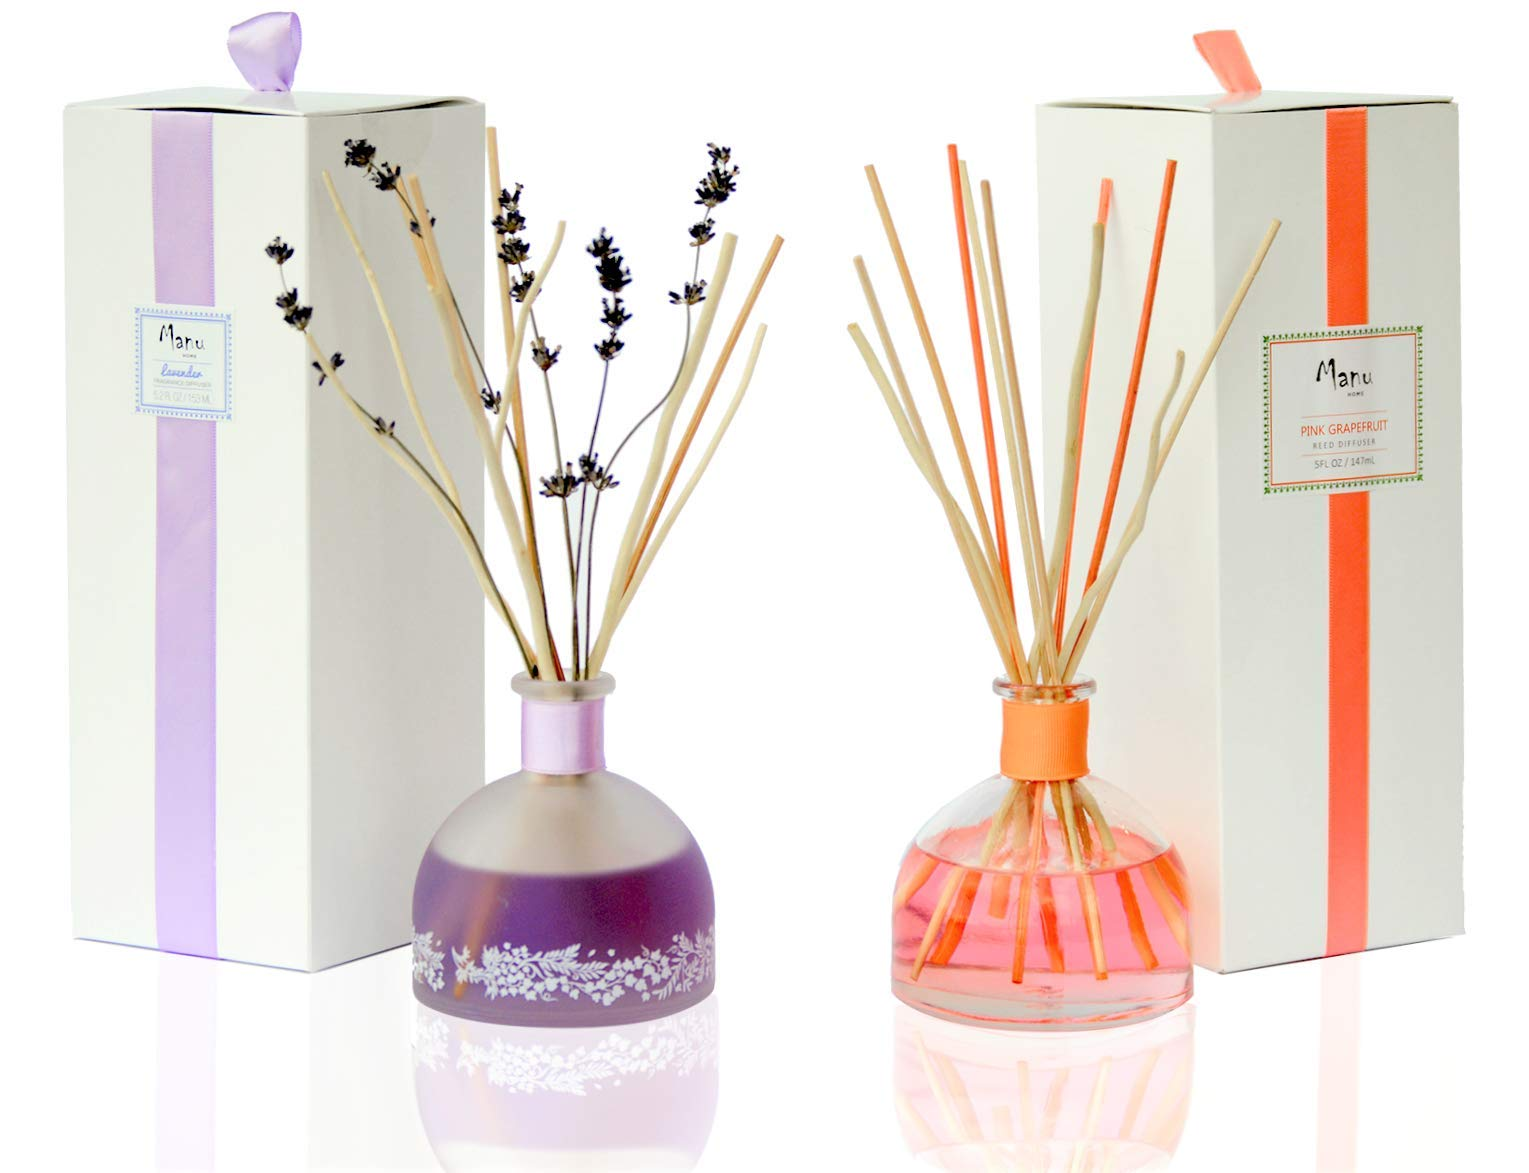 Manu Home Pink Grapefruit and Calm Lavender Reed Diffuser Sets | Best Value - 2 Pack Set | Luxurious Aromatherapy Bedroom and Kitchen Diffuser Sets | Made in USA~ by Manu Home